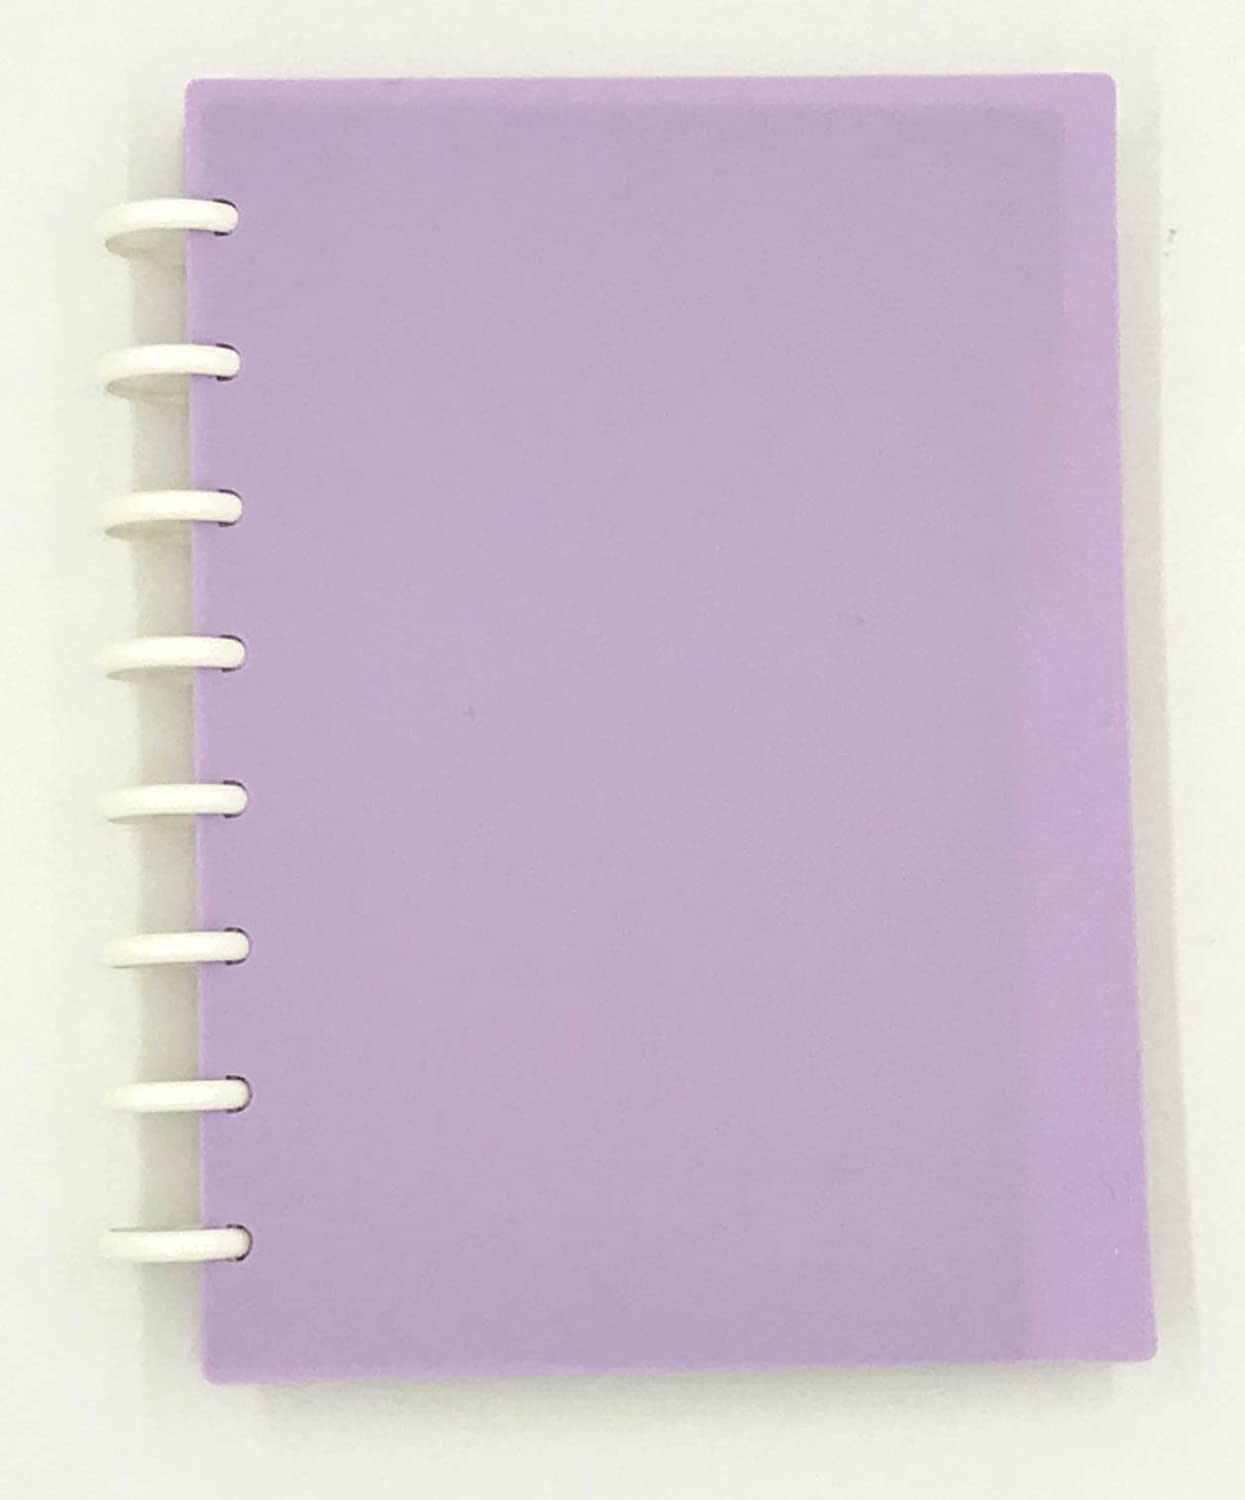 Amazon.com: Talia Discbound Cuaderno: Office Products